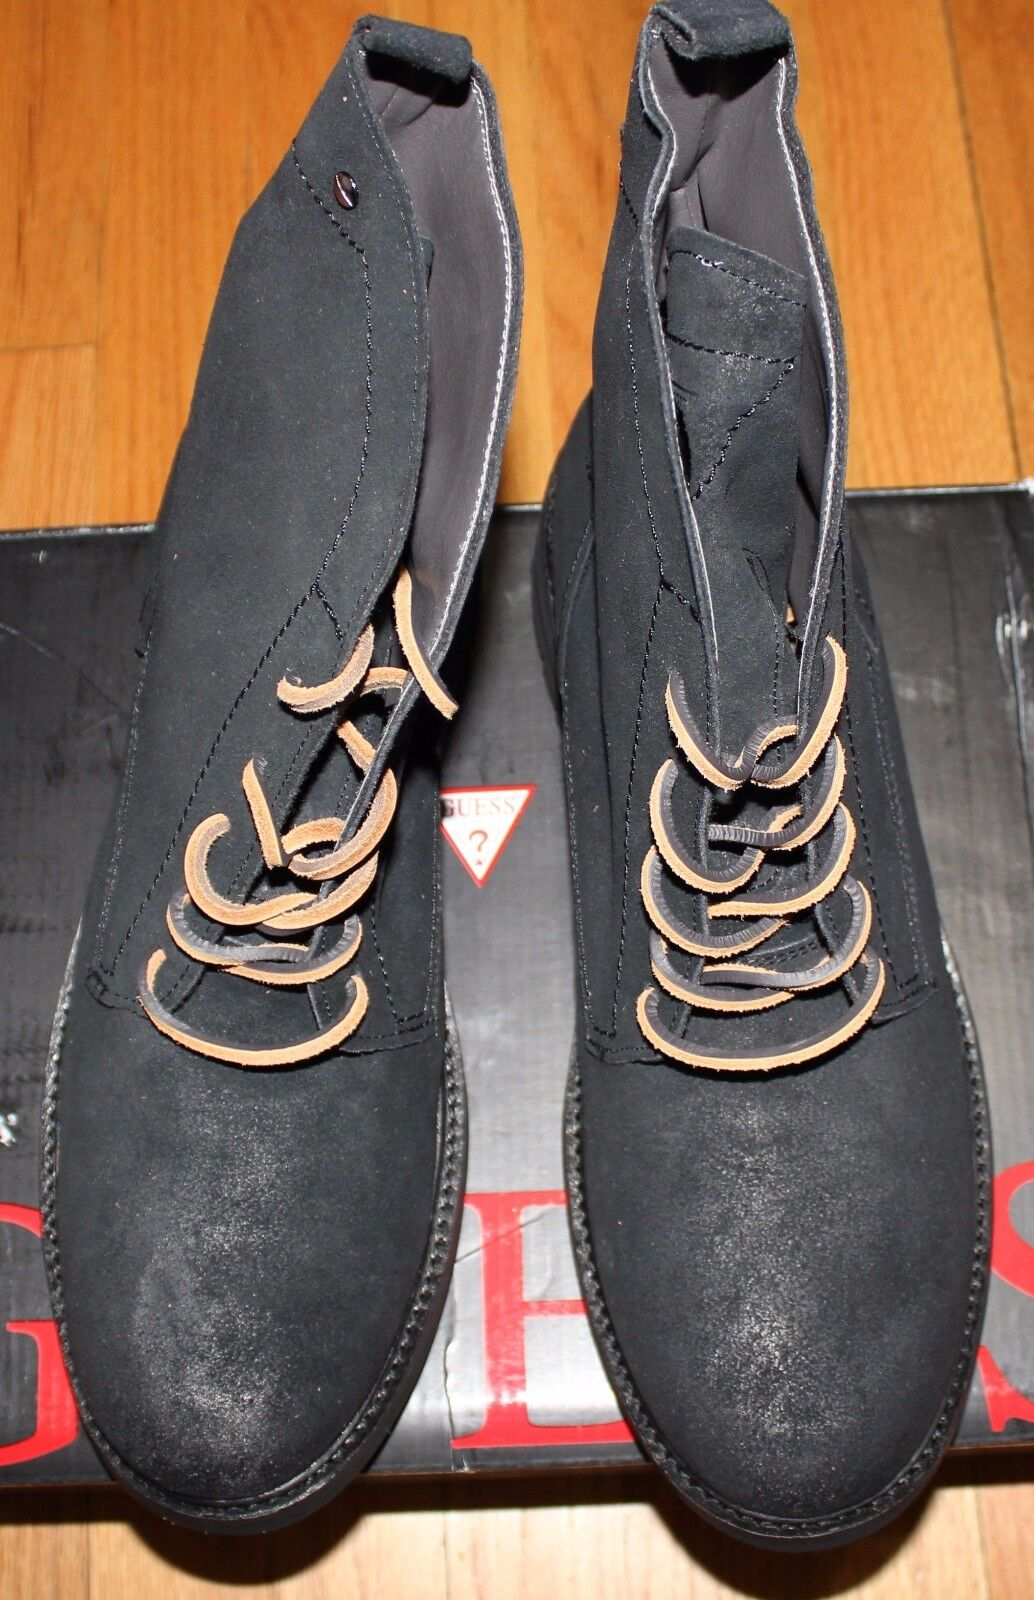 150 GUESS REMMY BLACK SUEDE HIGH TOP SNEAKER SZ 11M